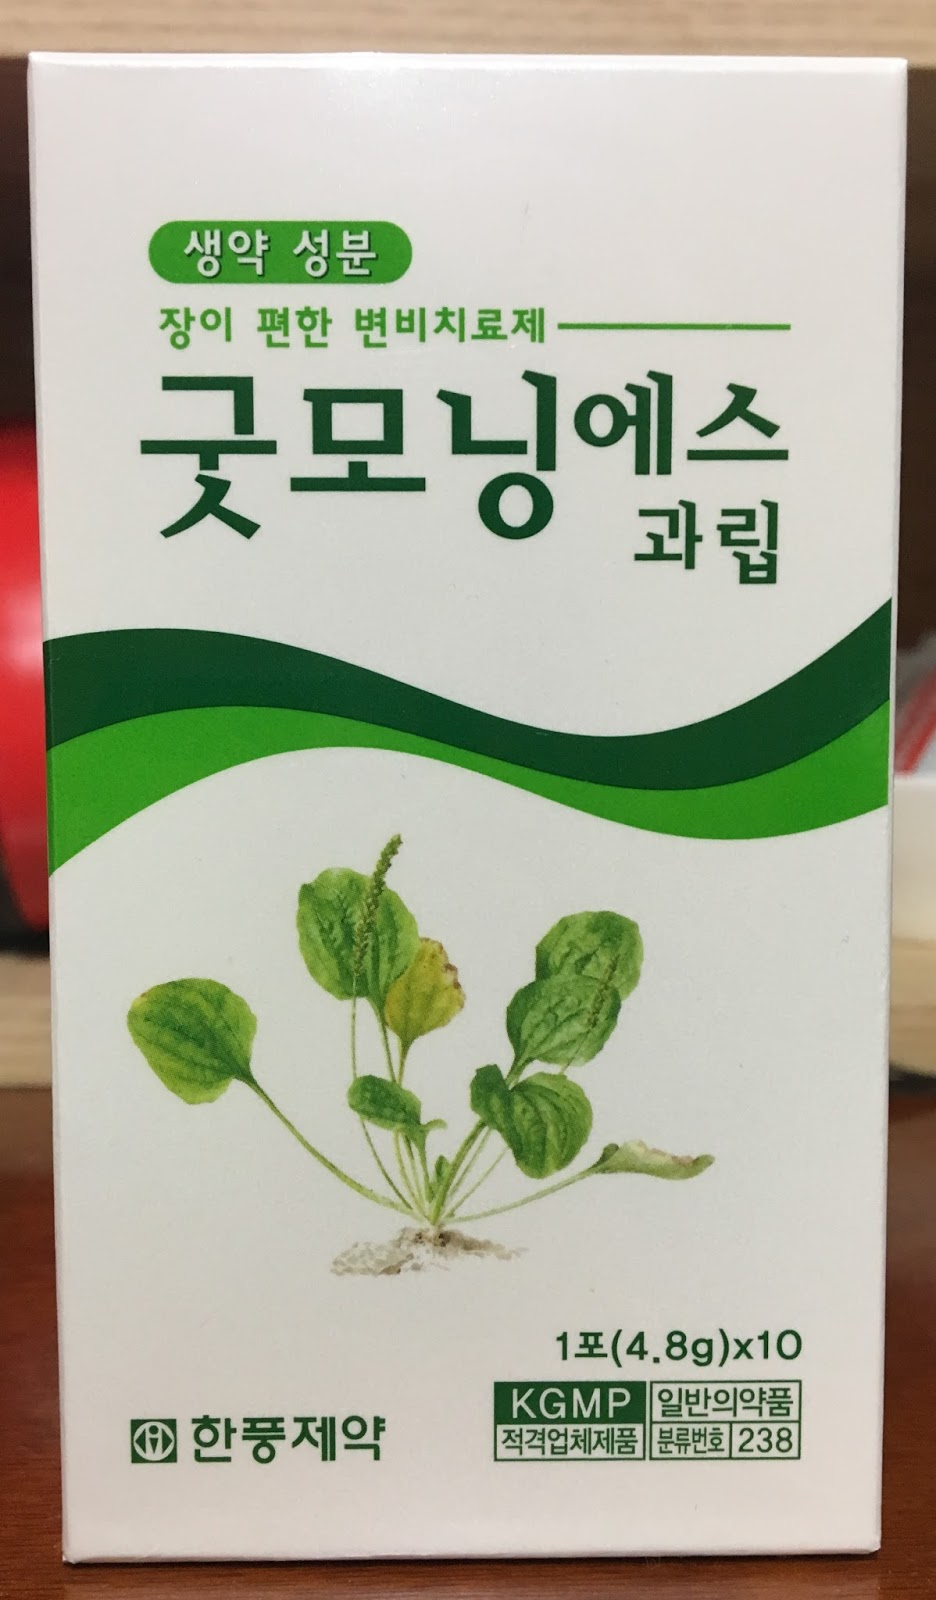 What S Good Morning In Korean : Quot good morning s 굿모닝에스 korean laxative is seriously awesome